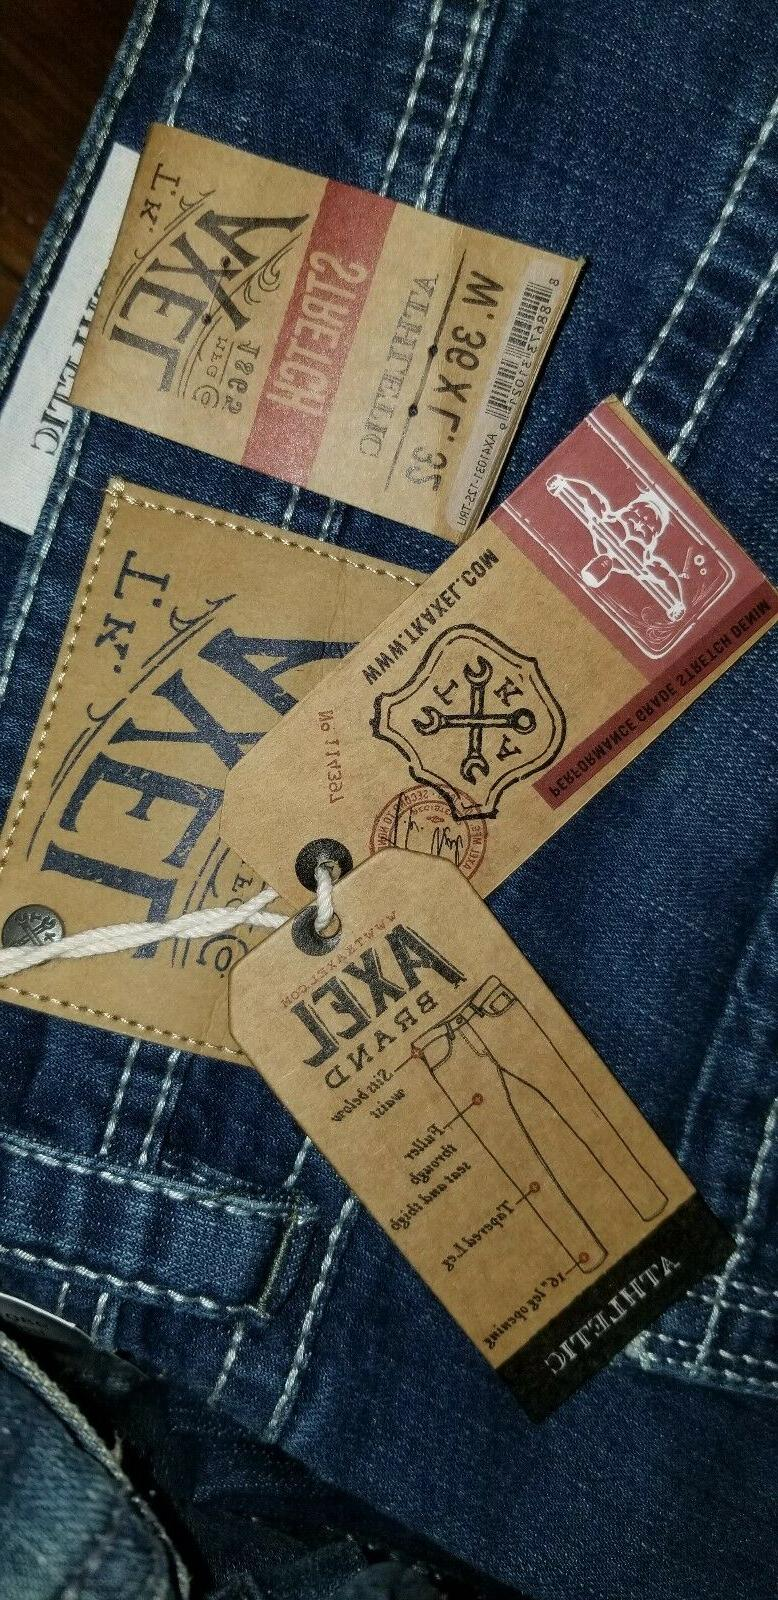 T.K. AXEL JEANS PICK 34 38 FIT & NEW